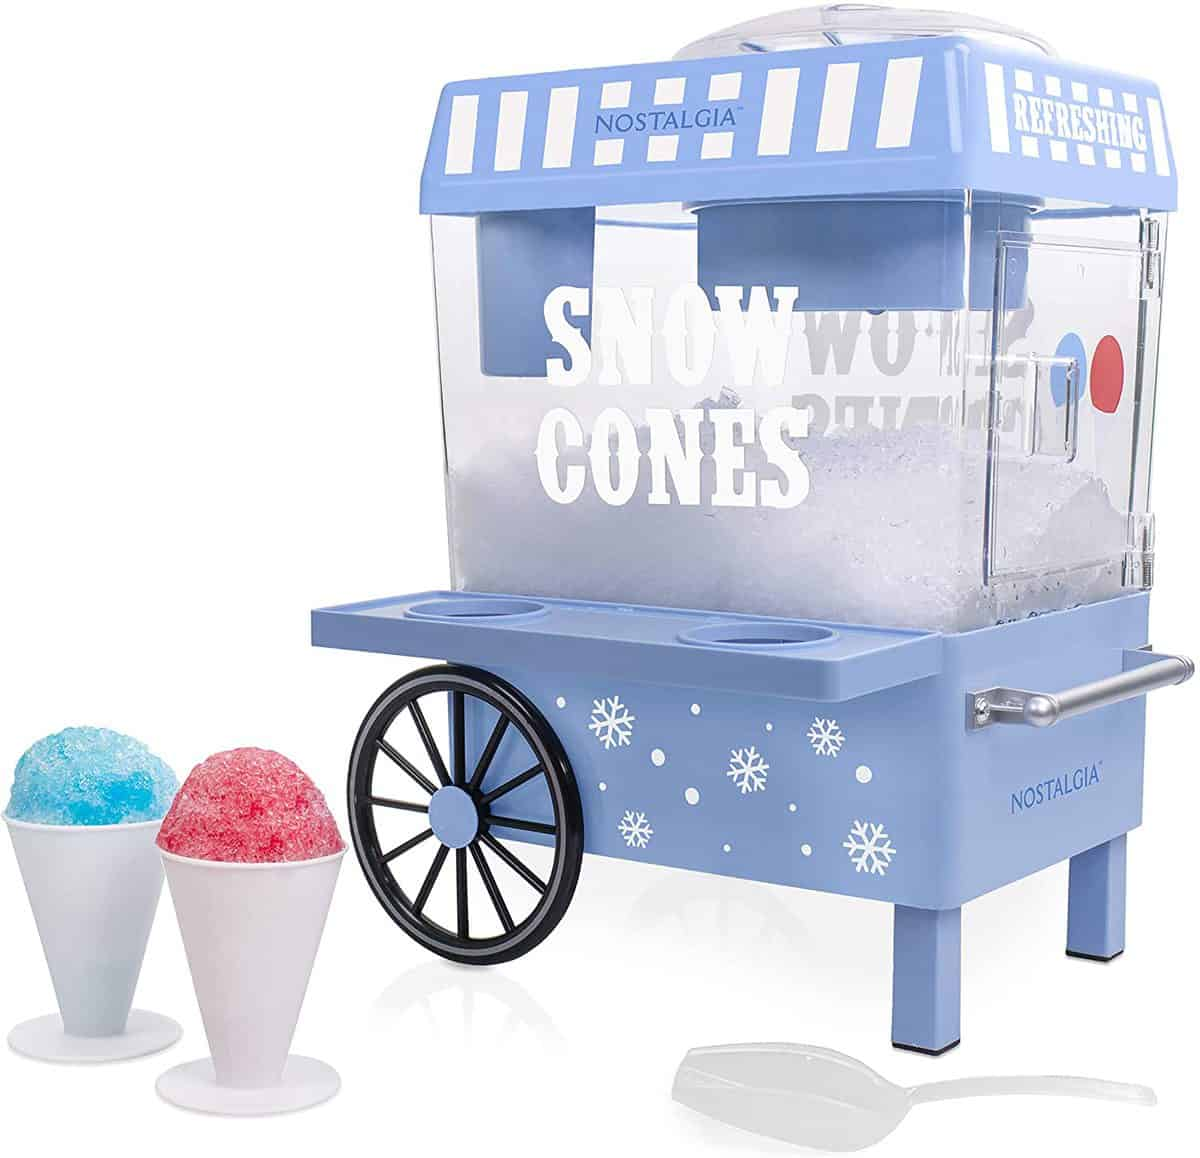 Vintage Countertop Snow Cone Maker